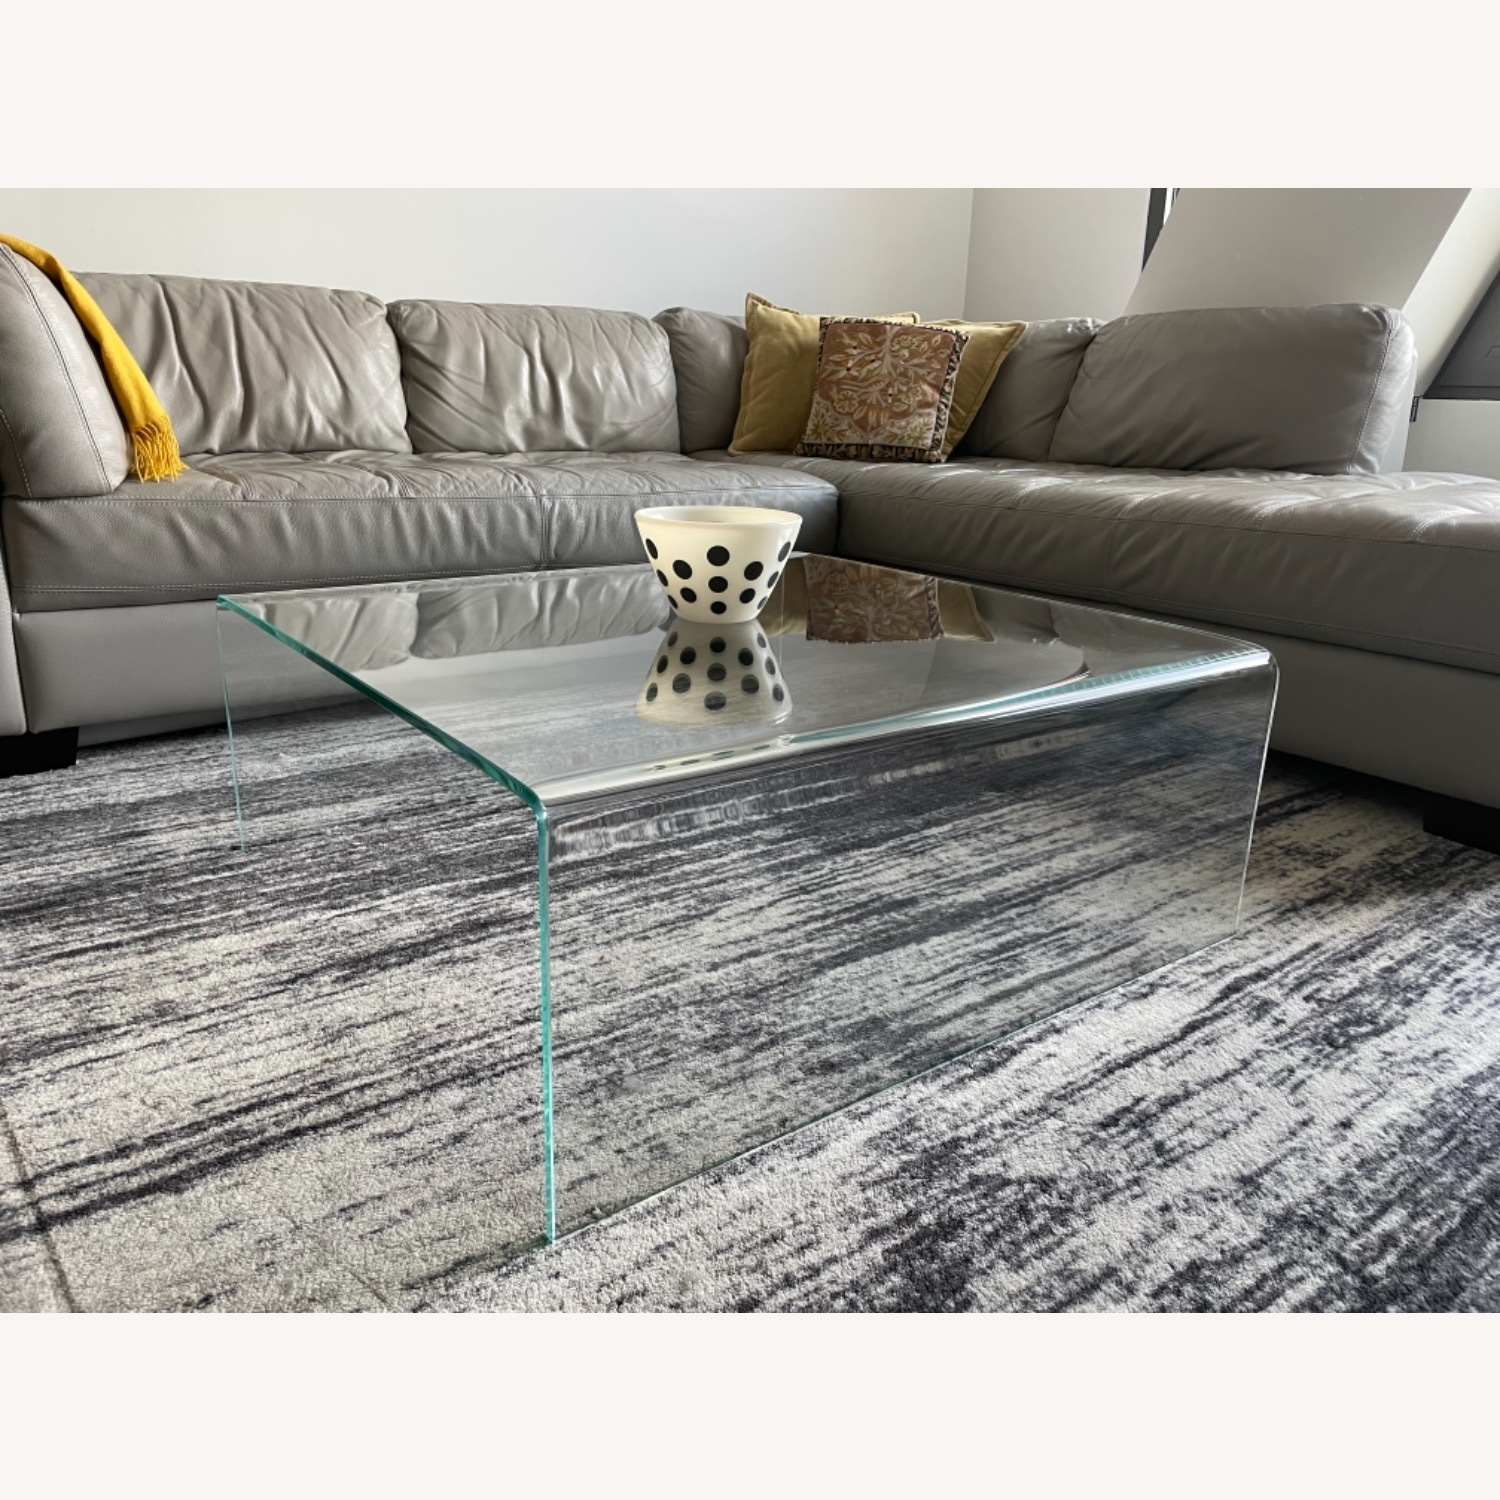 ABC Carpet Home Glass Coffee Table - image-1